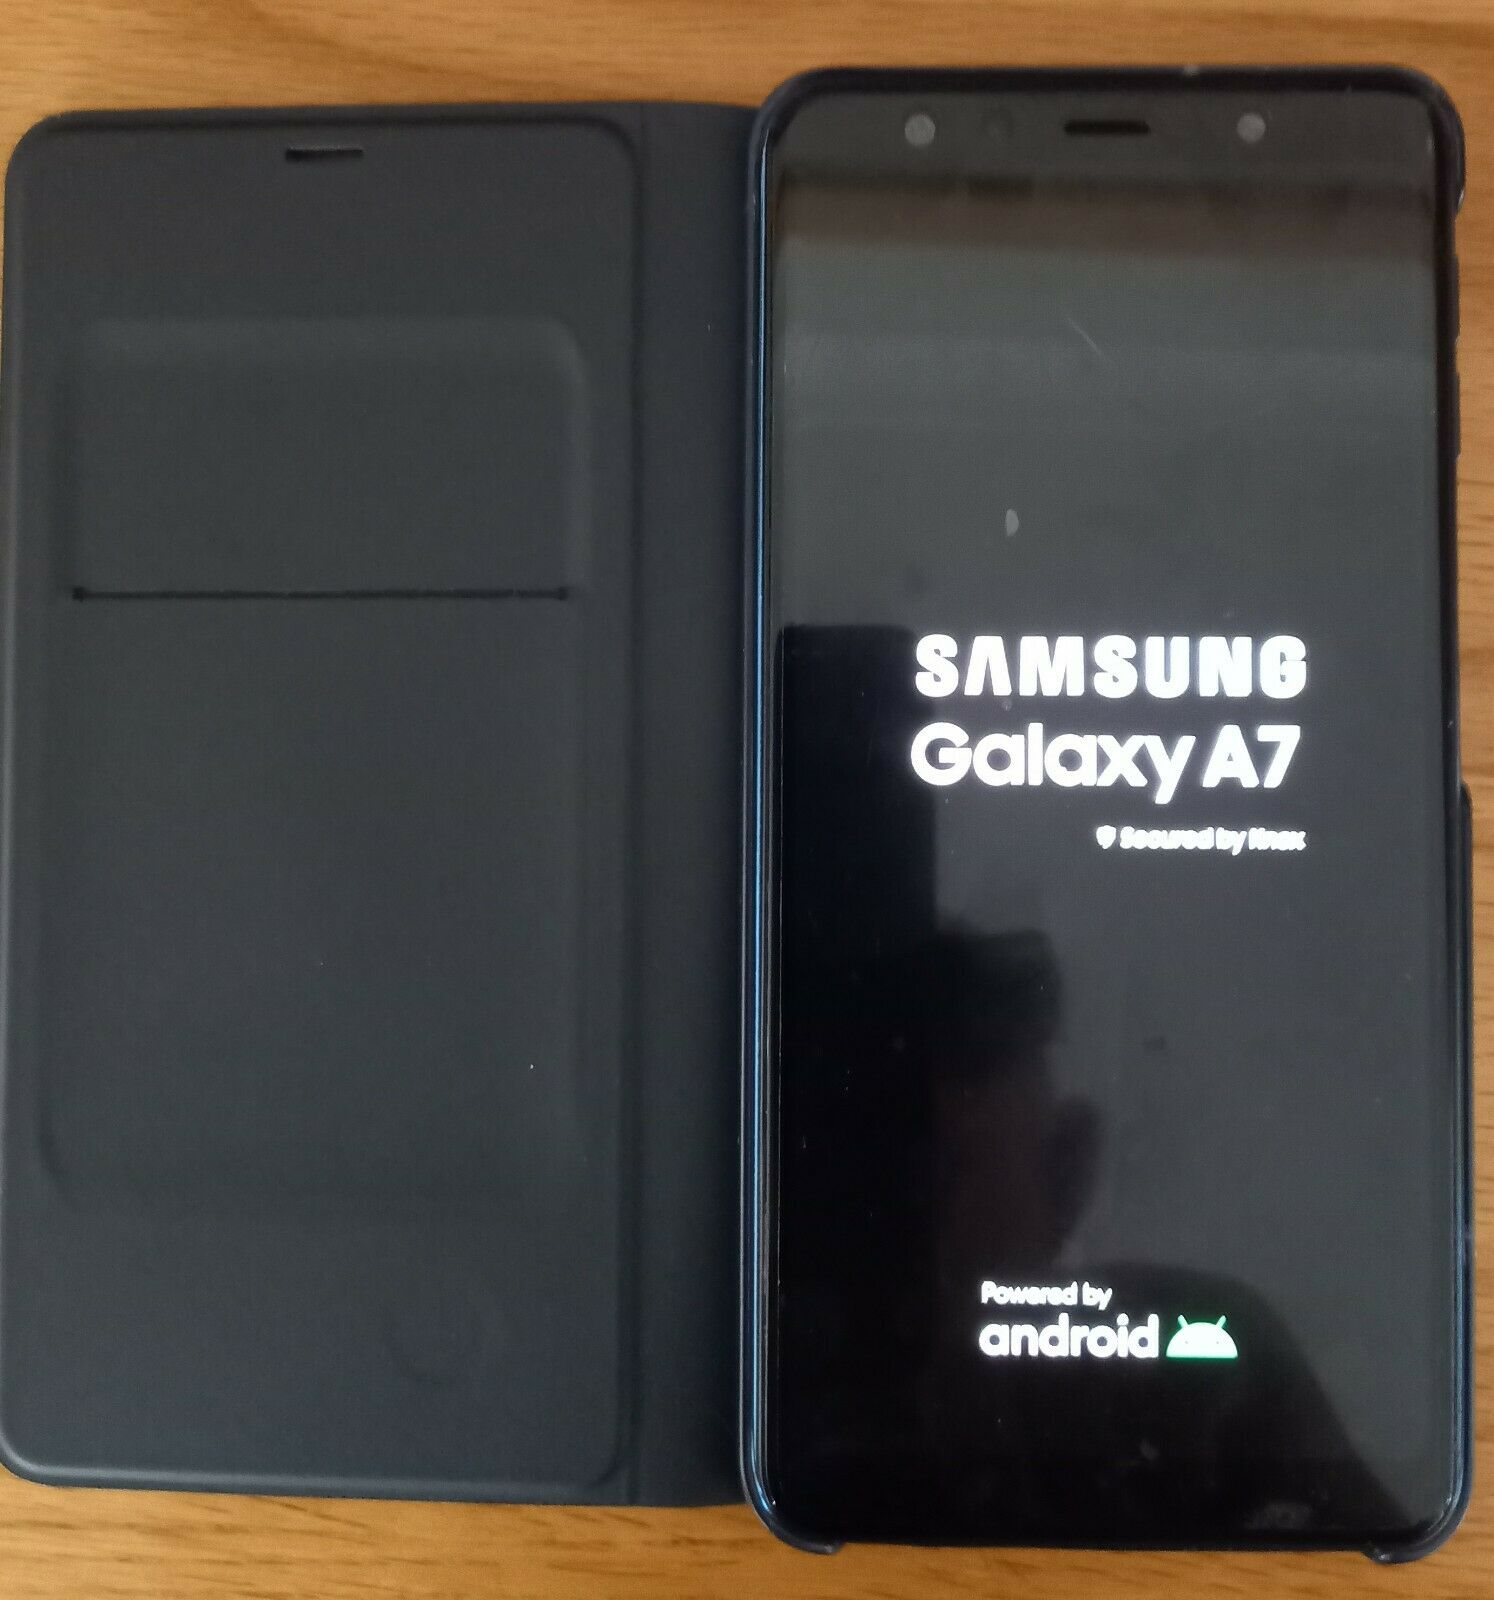 Android Phone - Samsung Galaxy A7 Mobile Phone